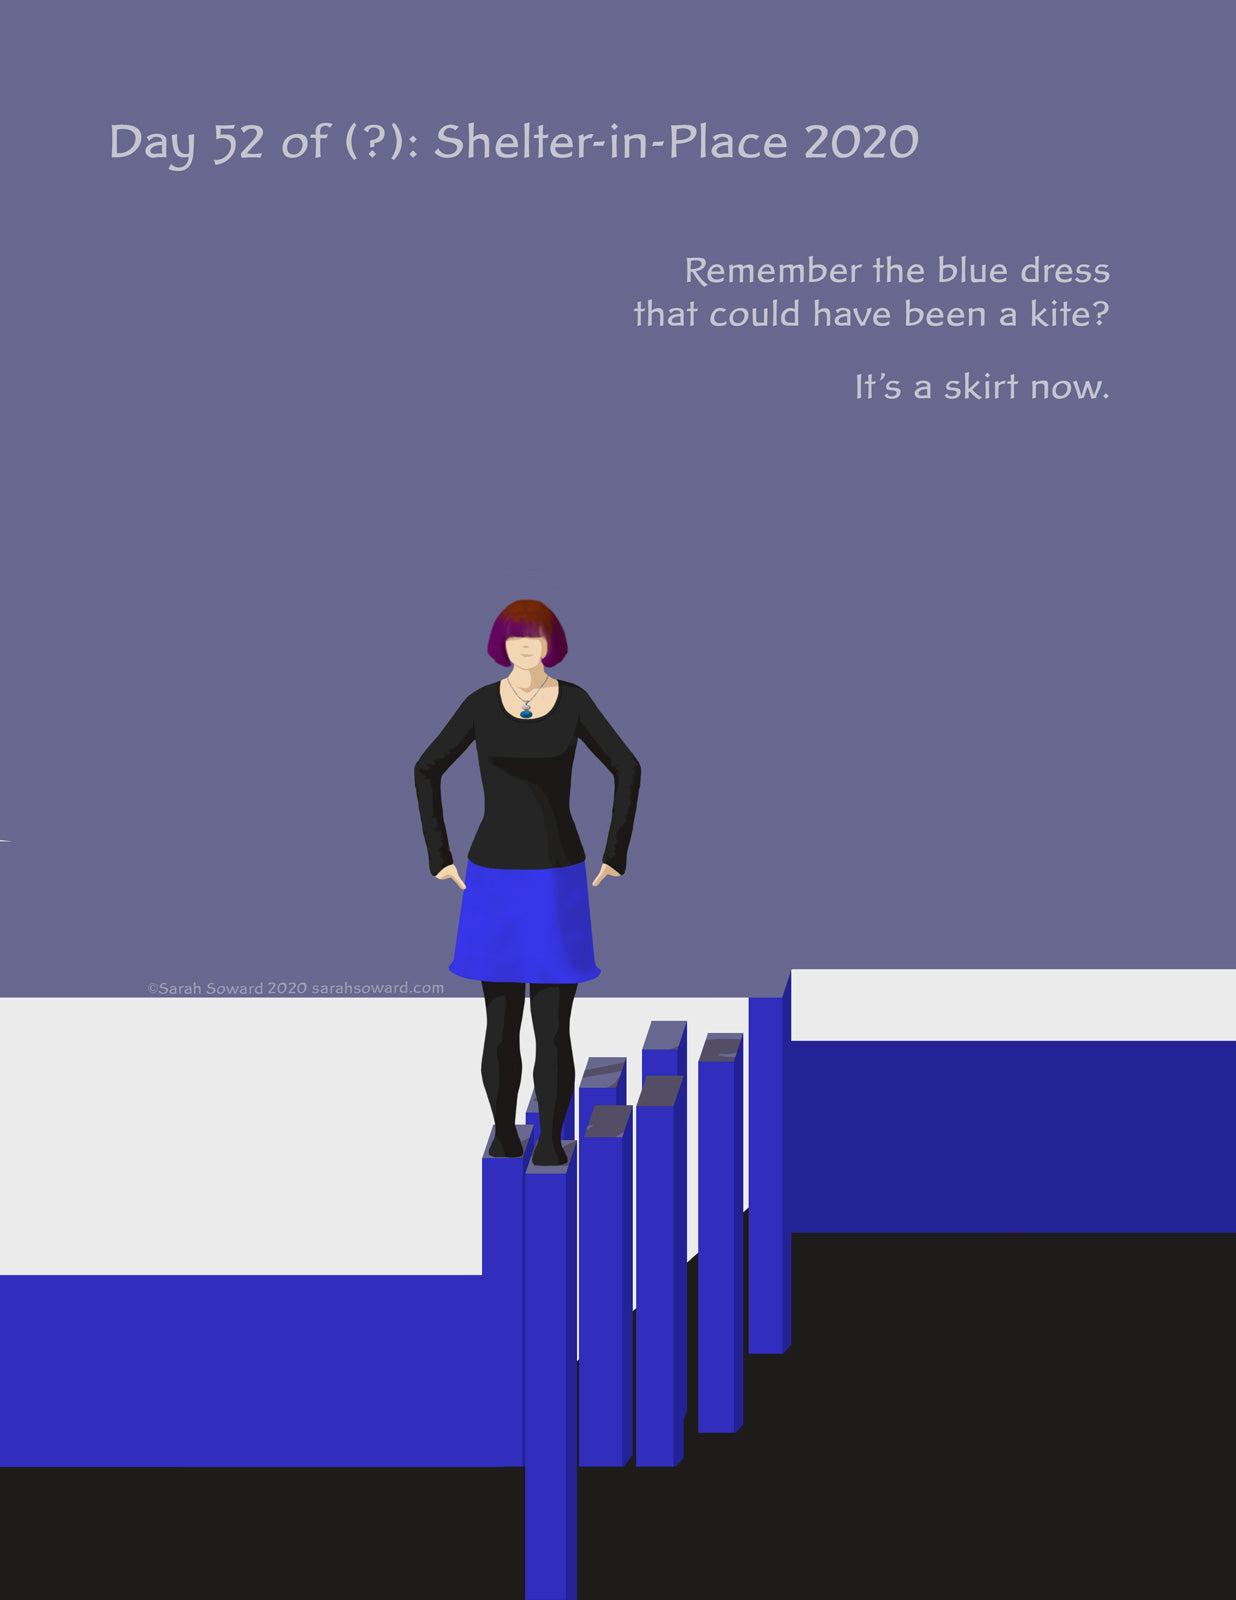 A woman is walking on tall posts above blackness. The posts seem to be joining with a lighter, more solid surface. The text on the image reads  Remember the blue dress that could have been a kite? It's a skirt now.